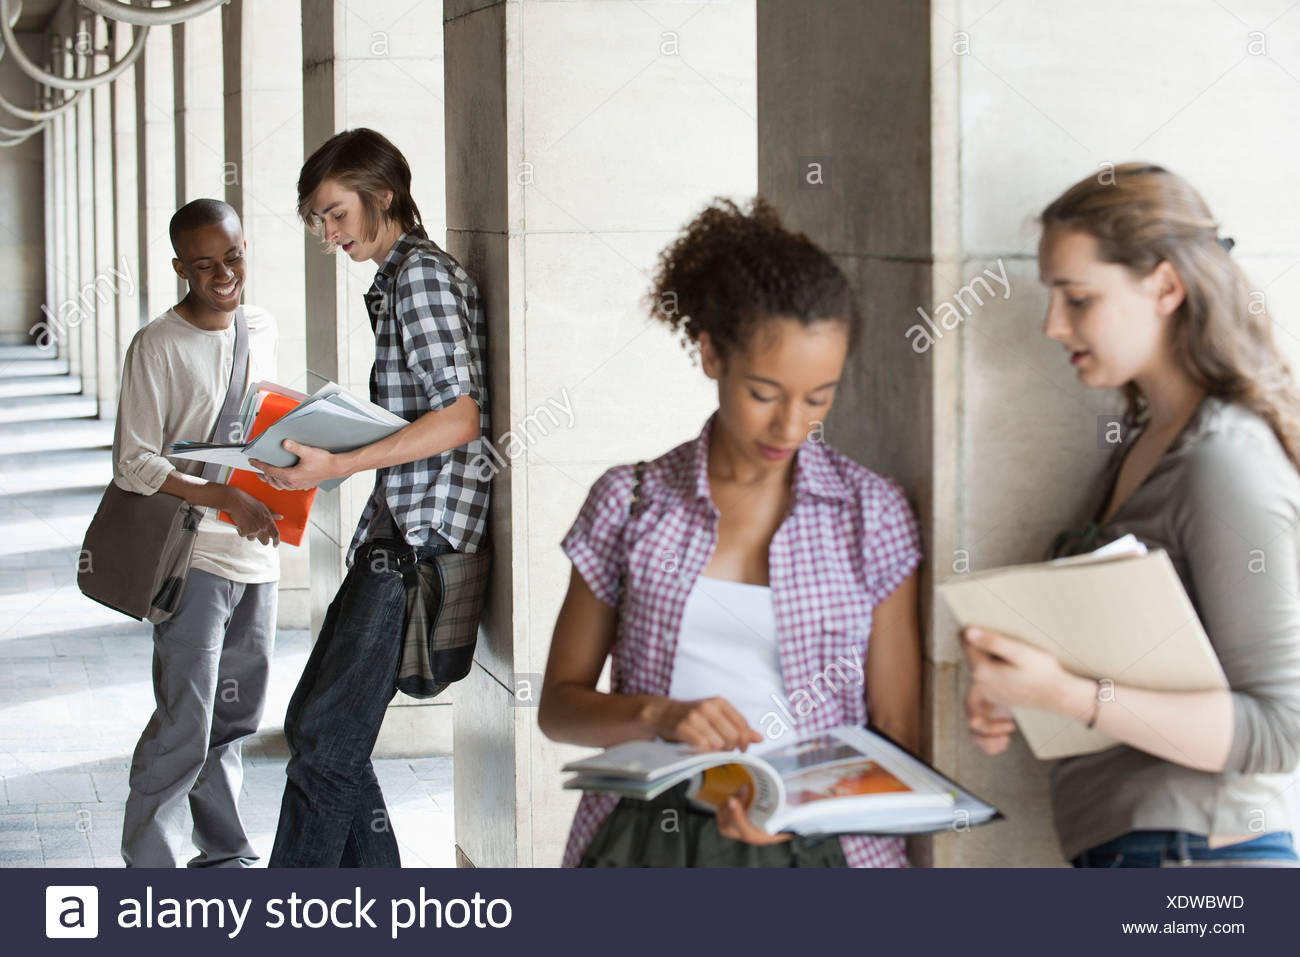 University students discussing homework, focus on men in background - Stock Image